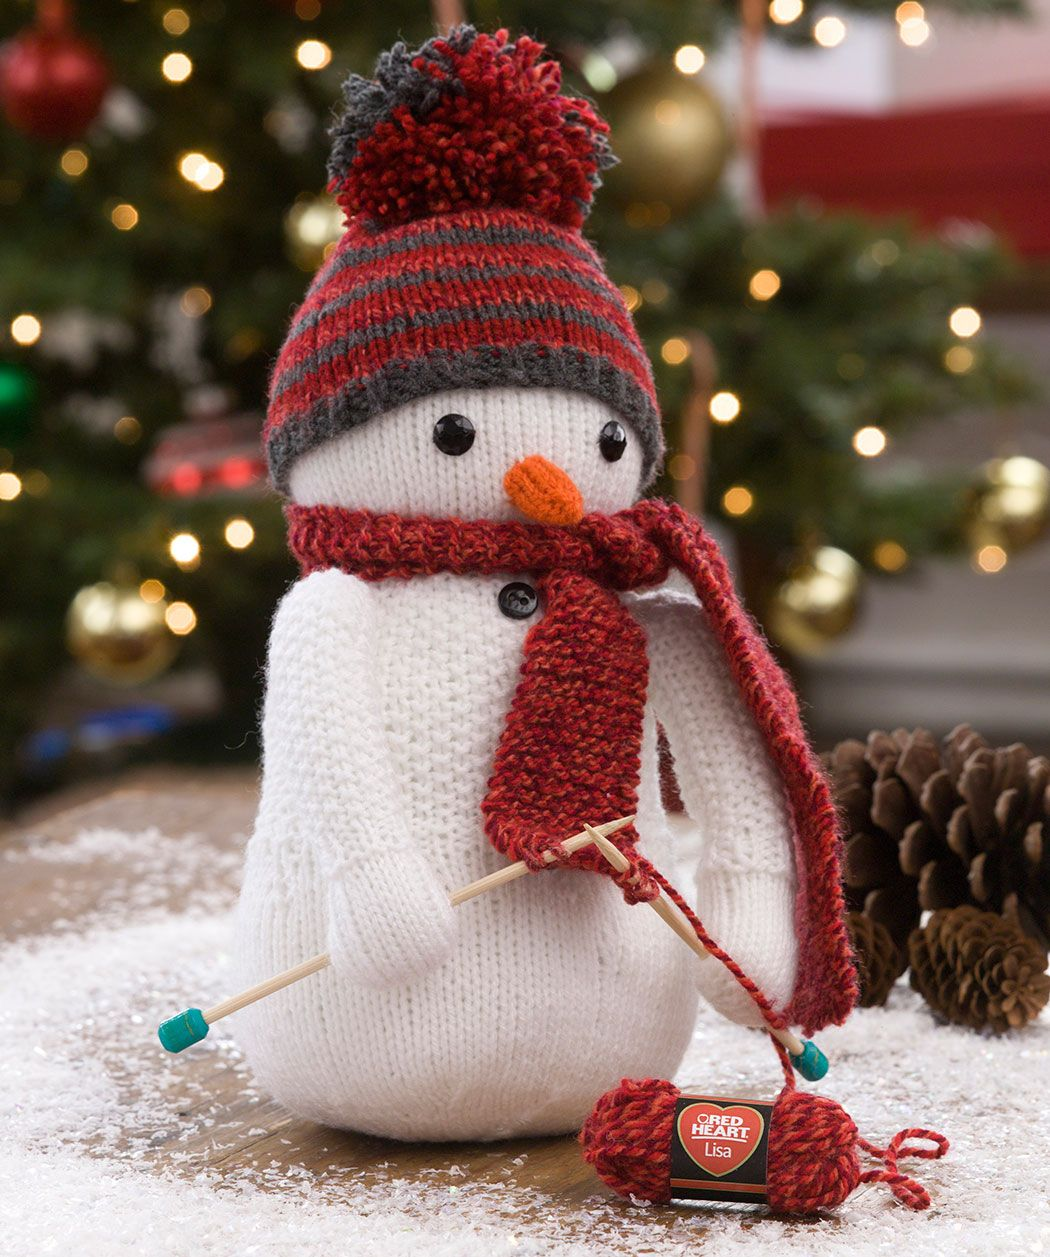 Knitting Snowman Free Knitting Pattern in Red Heart Yarns | Knitting ...